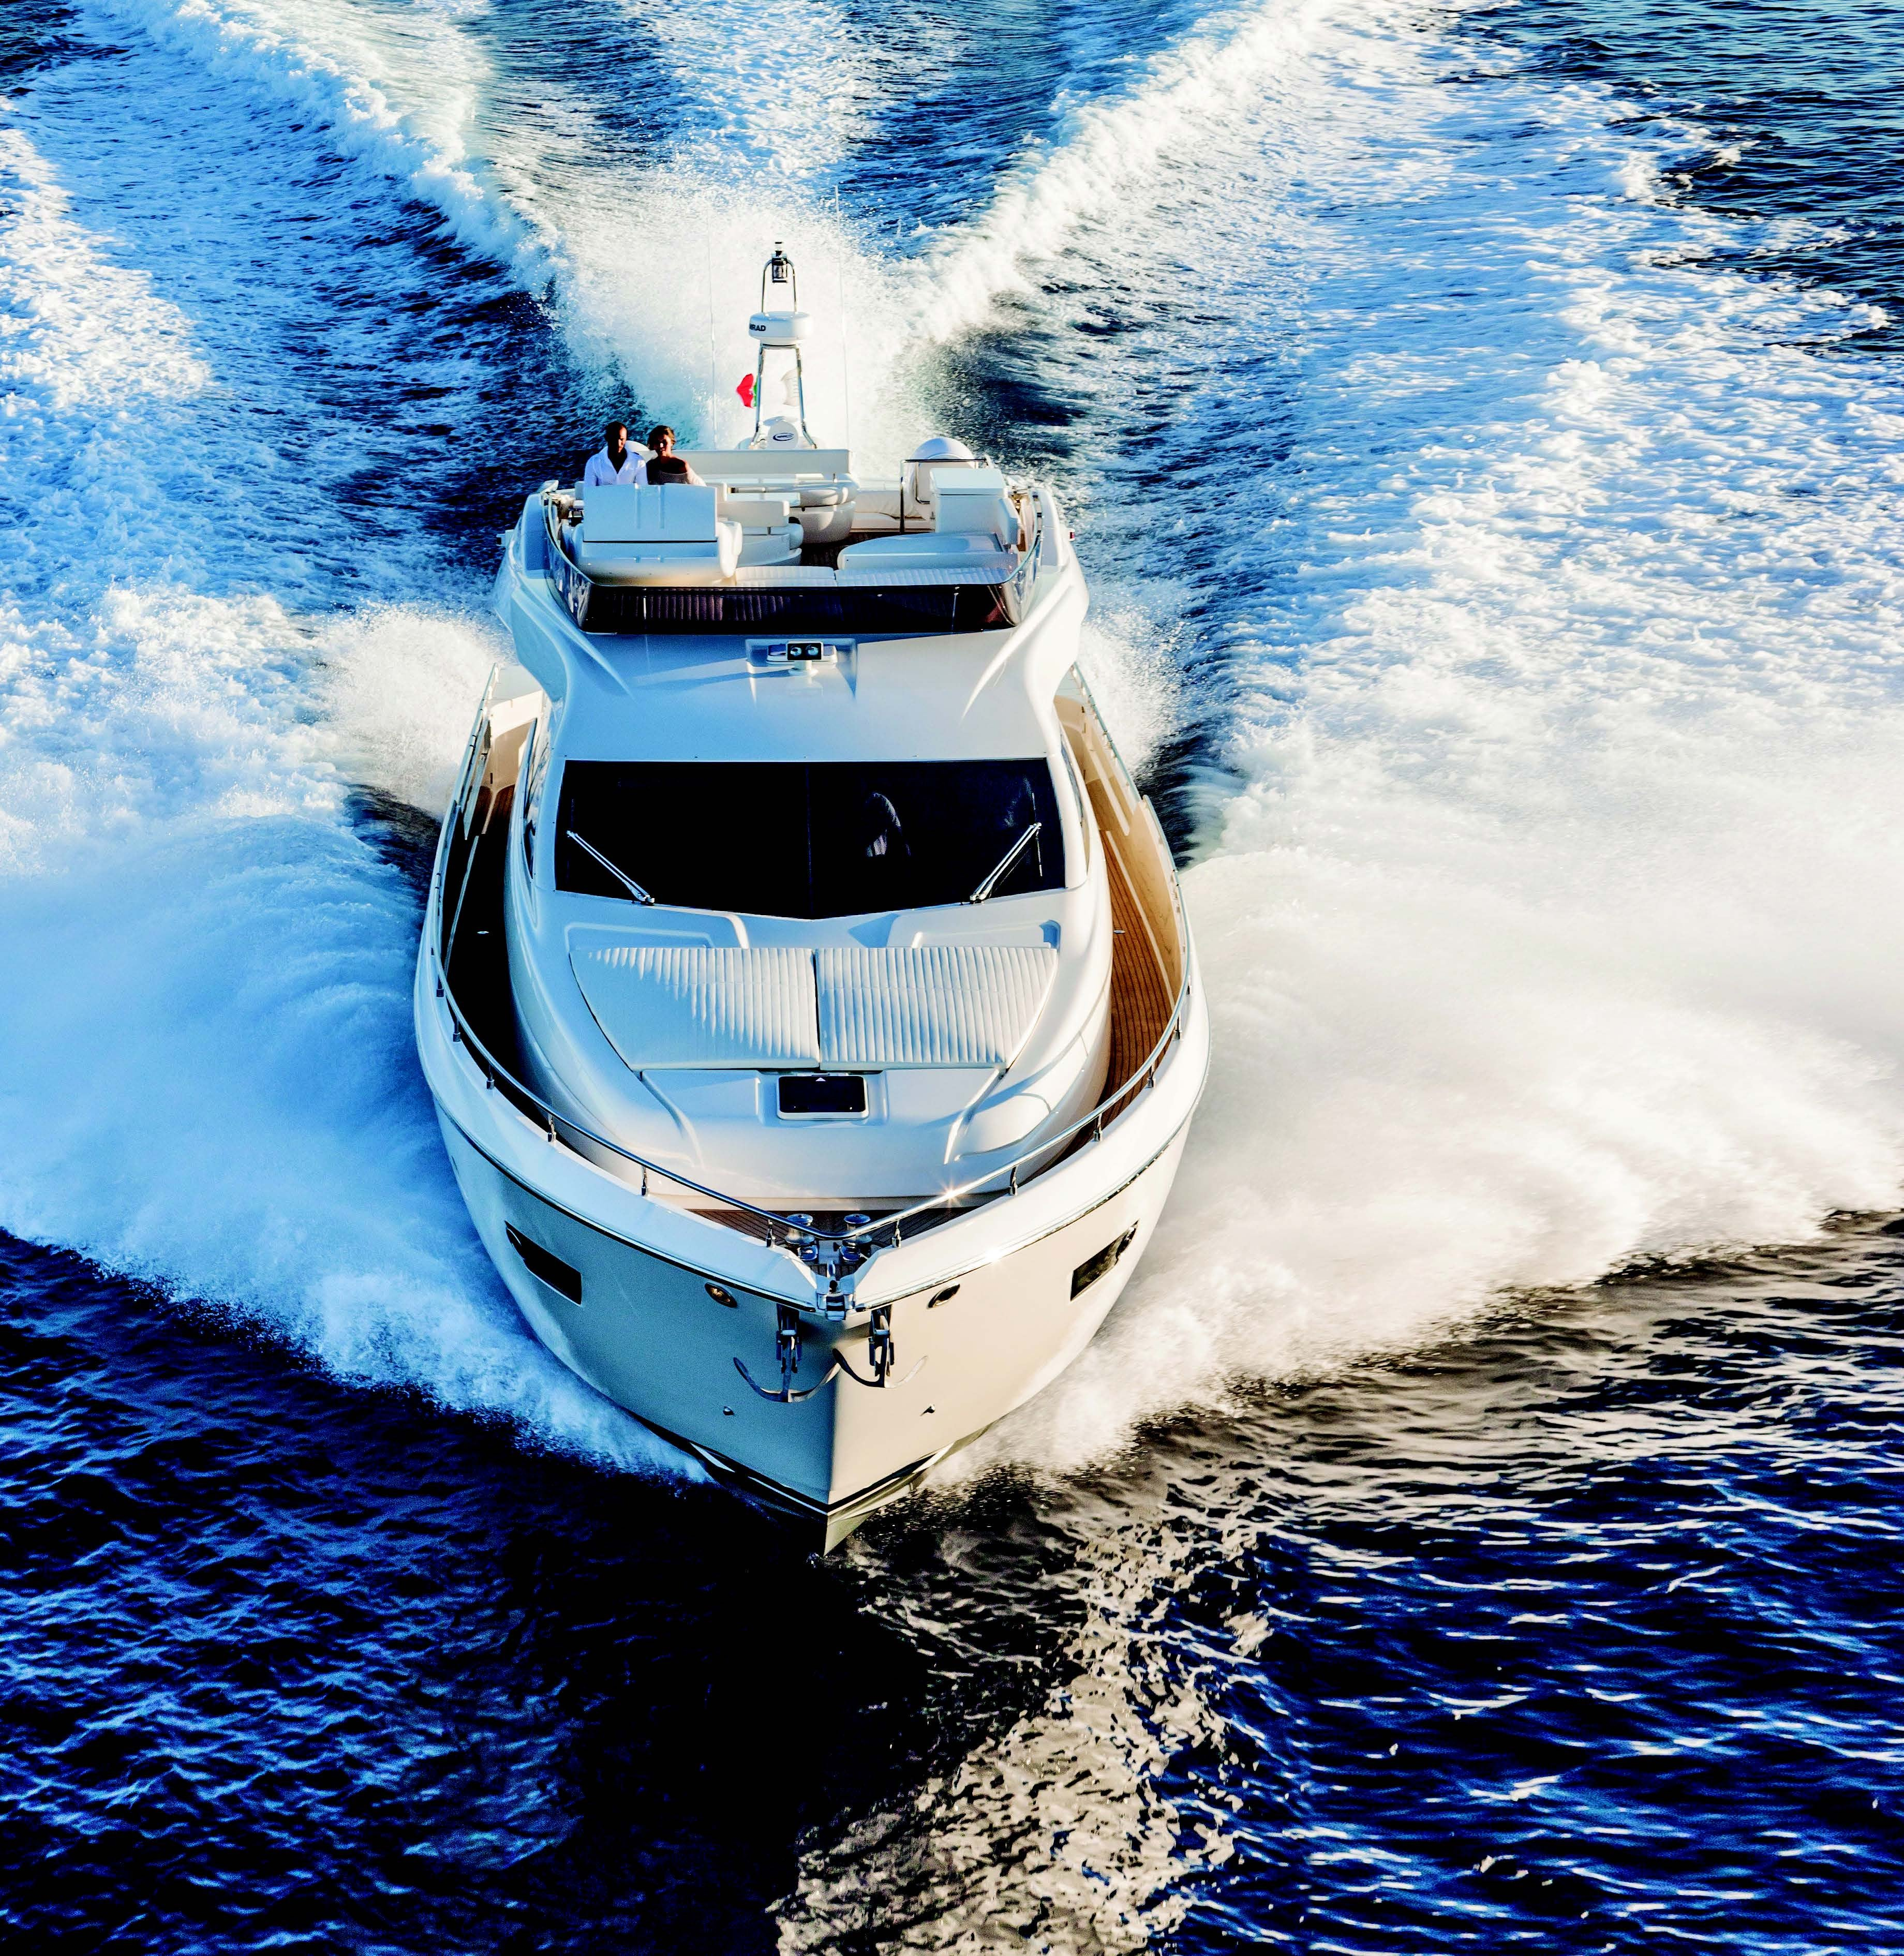 Top yacht the ferretti 750 elite traveler for 50 best boutique hotels in the med by the times 2015